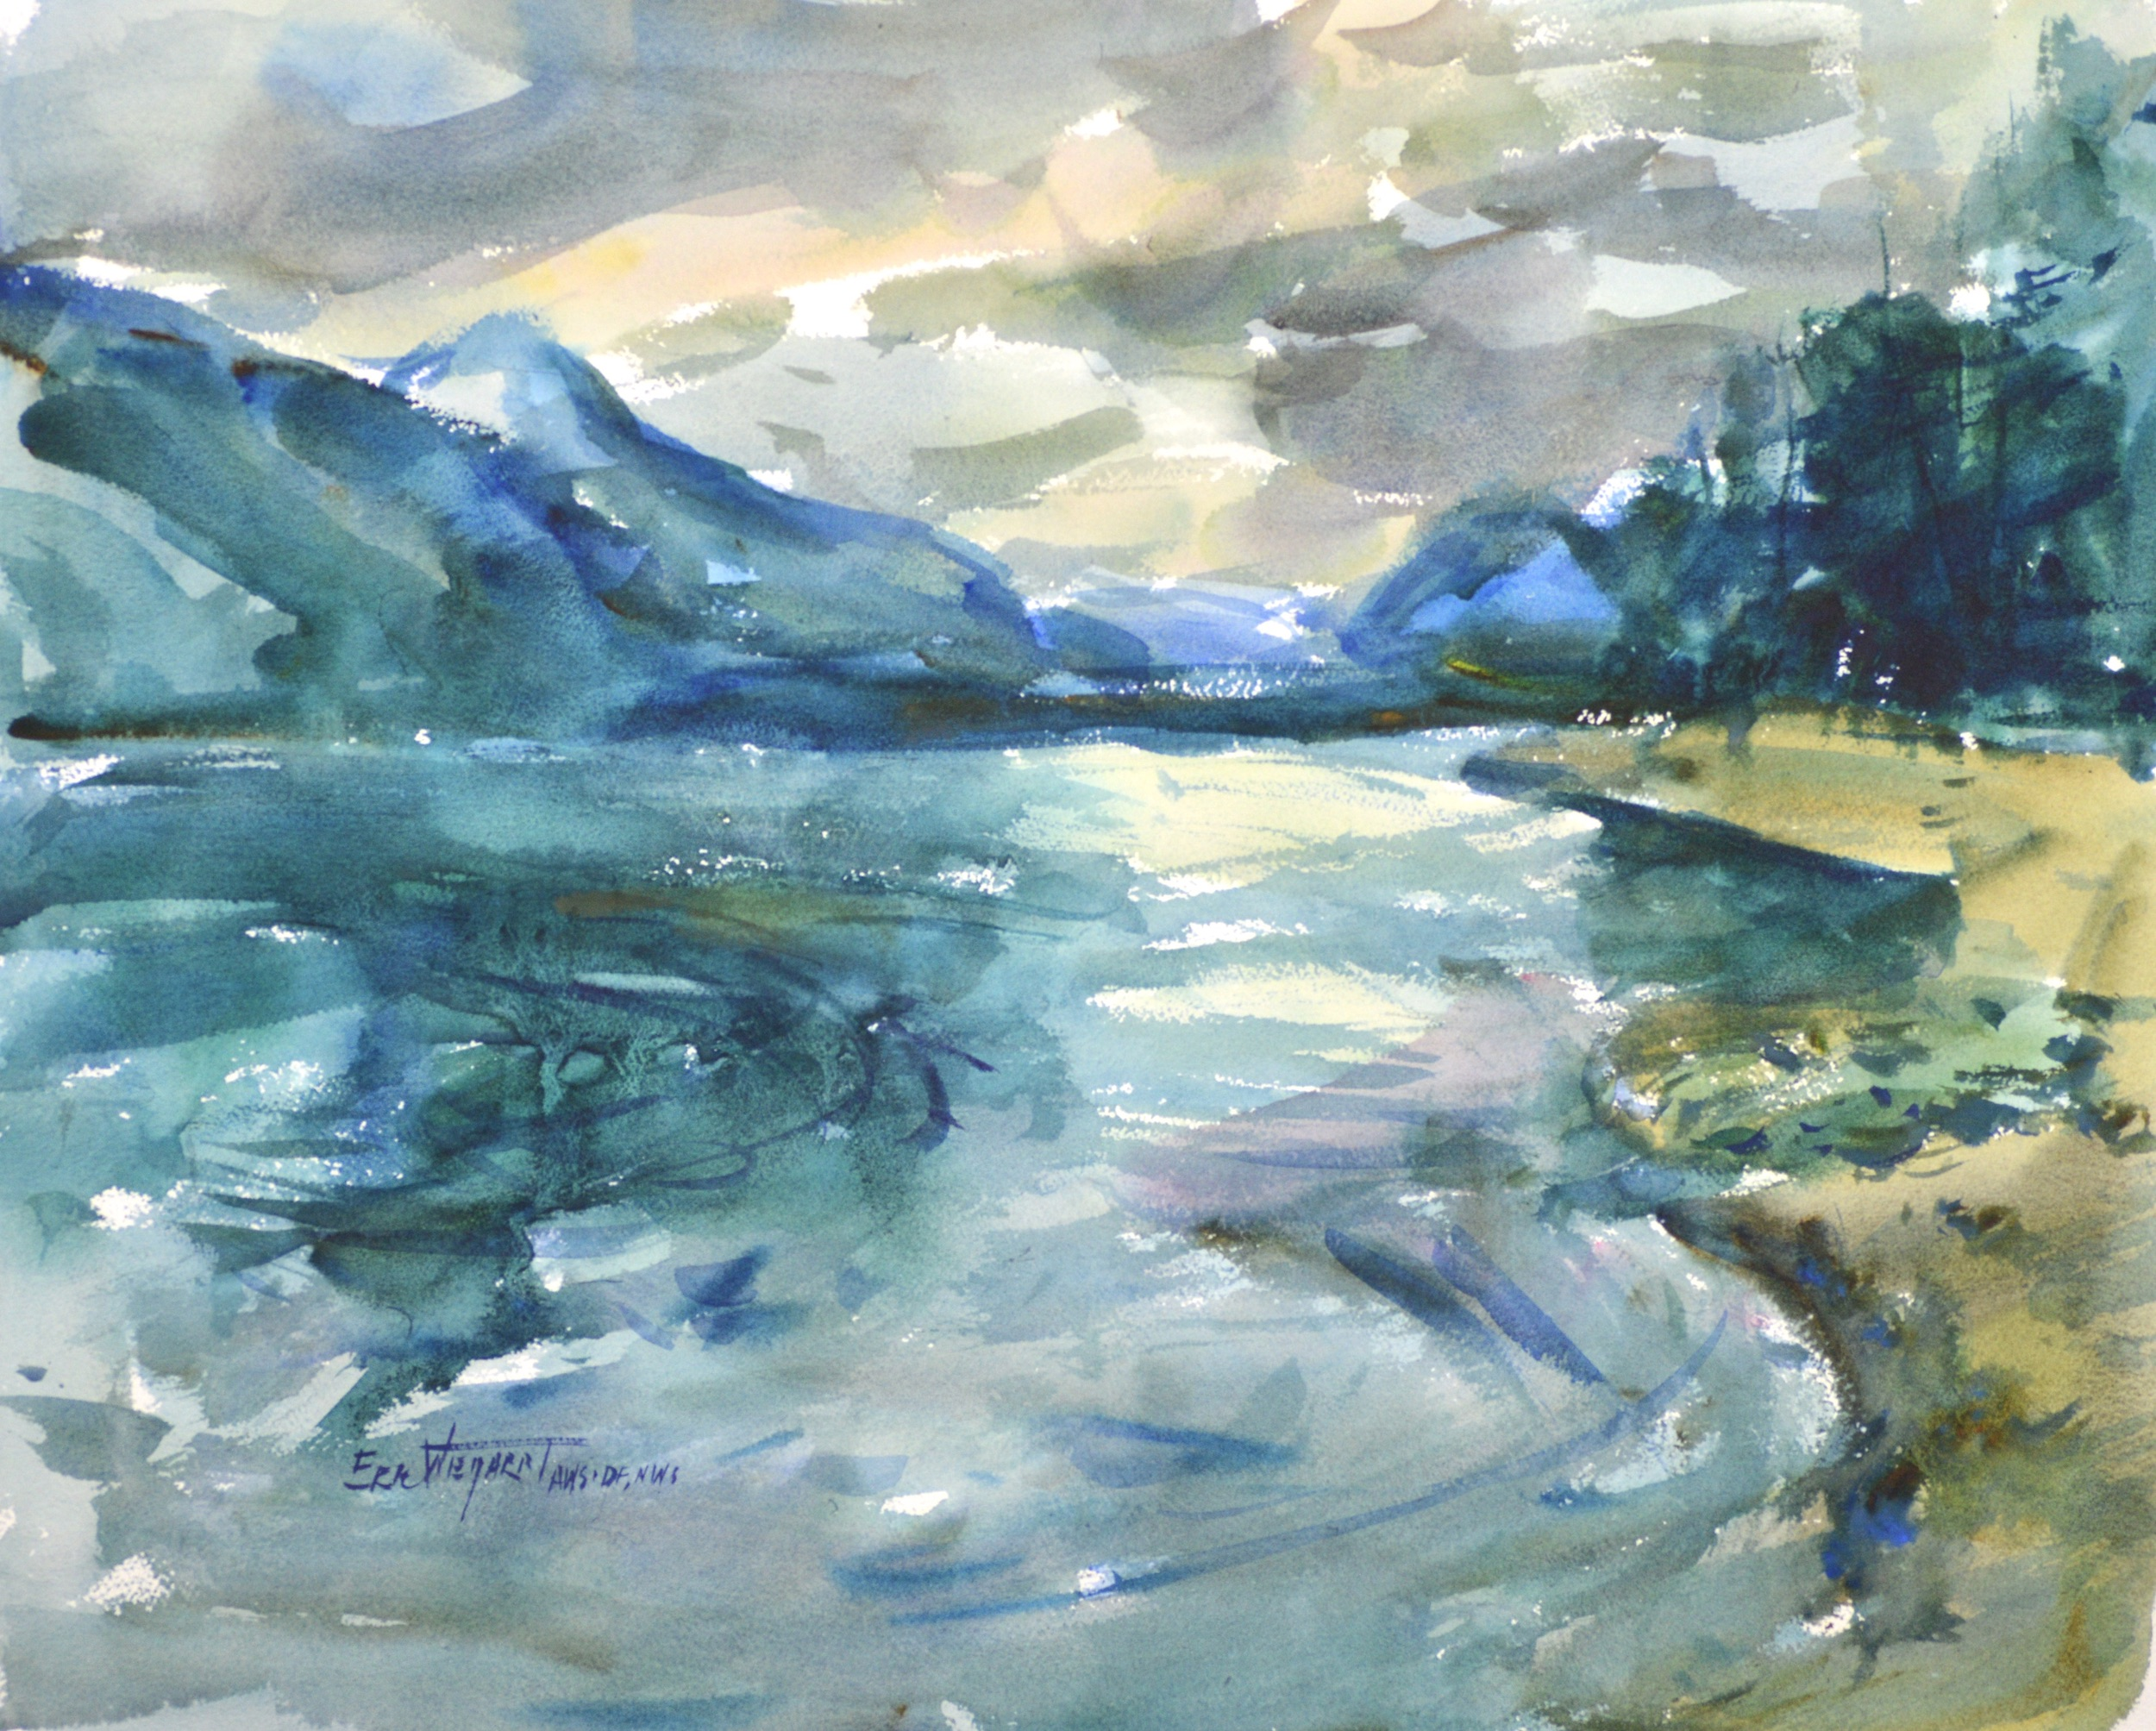 4234 Glacier Park, original watercolor painting by Eric Wiegardt AWS-DF, NWS